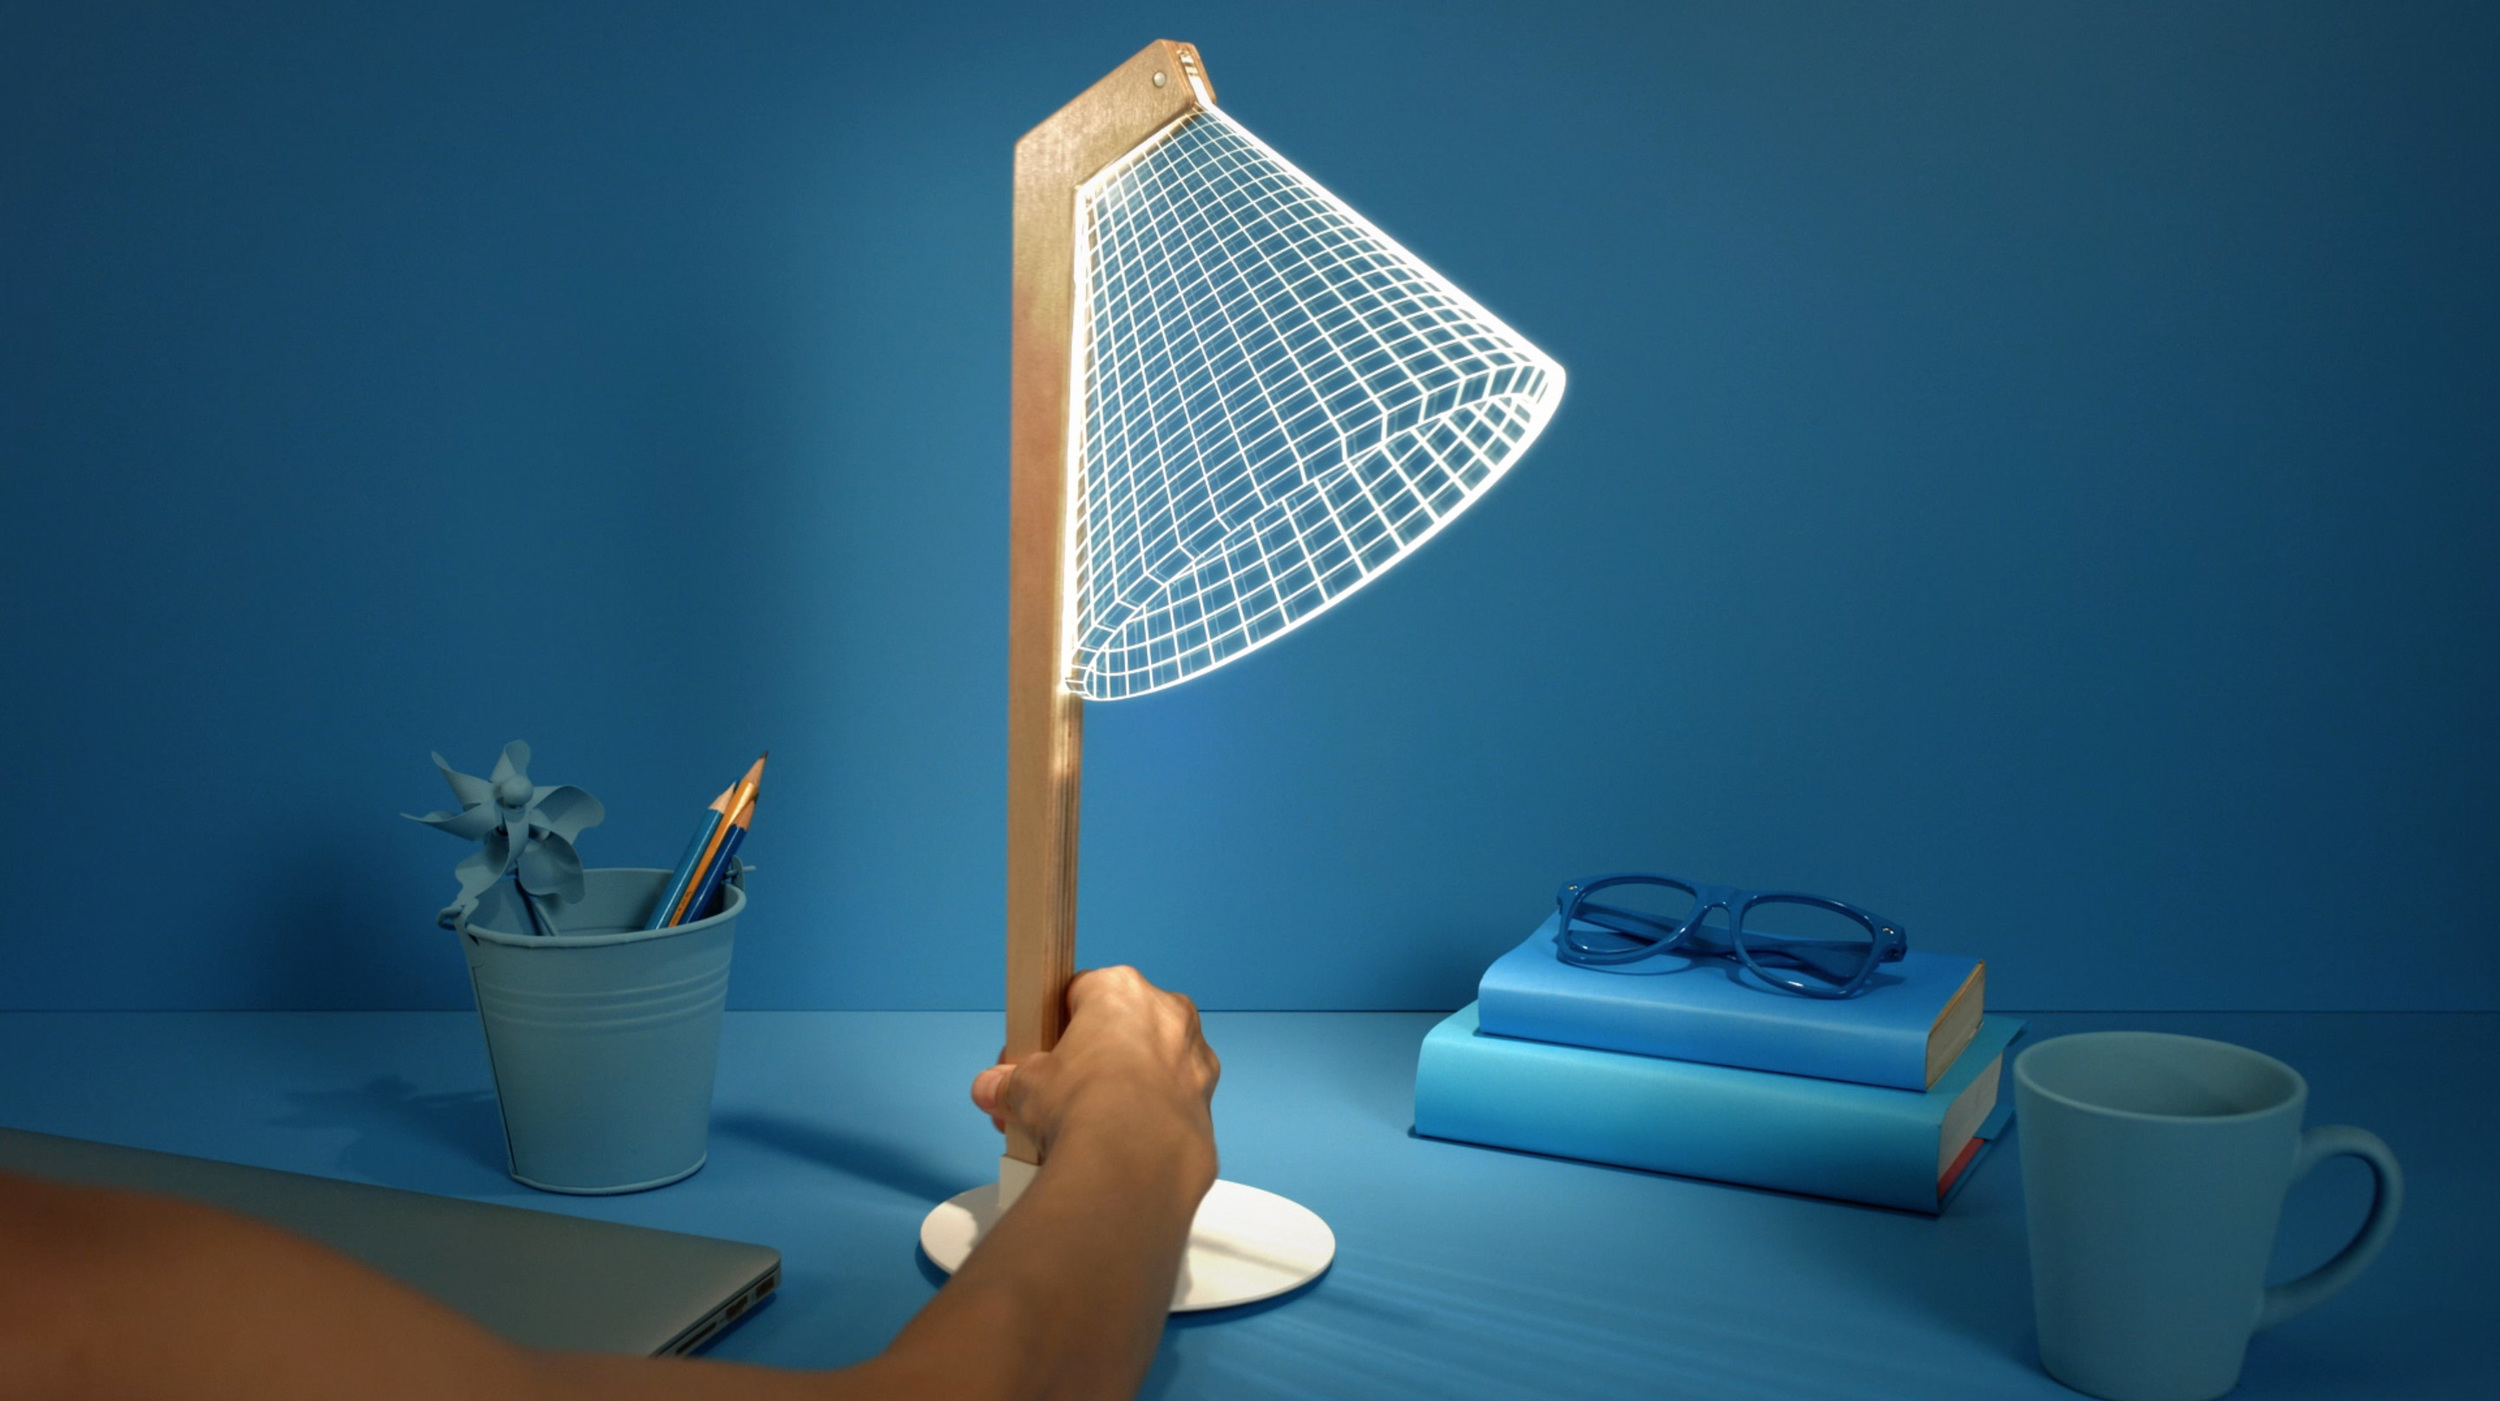 The slim, two-dimensional profile of the DESKi reading lamp becomes three dimensional.